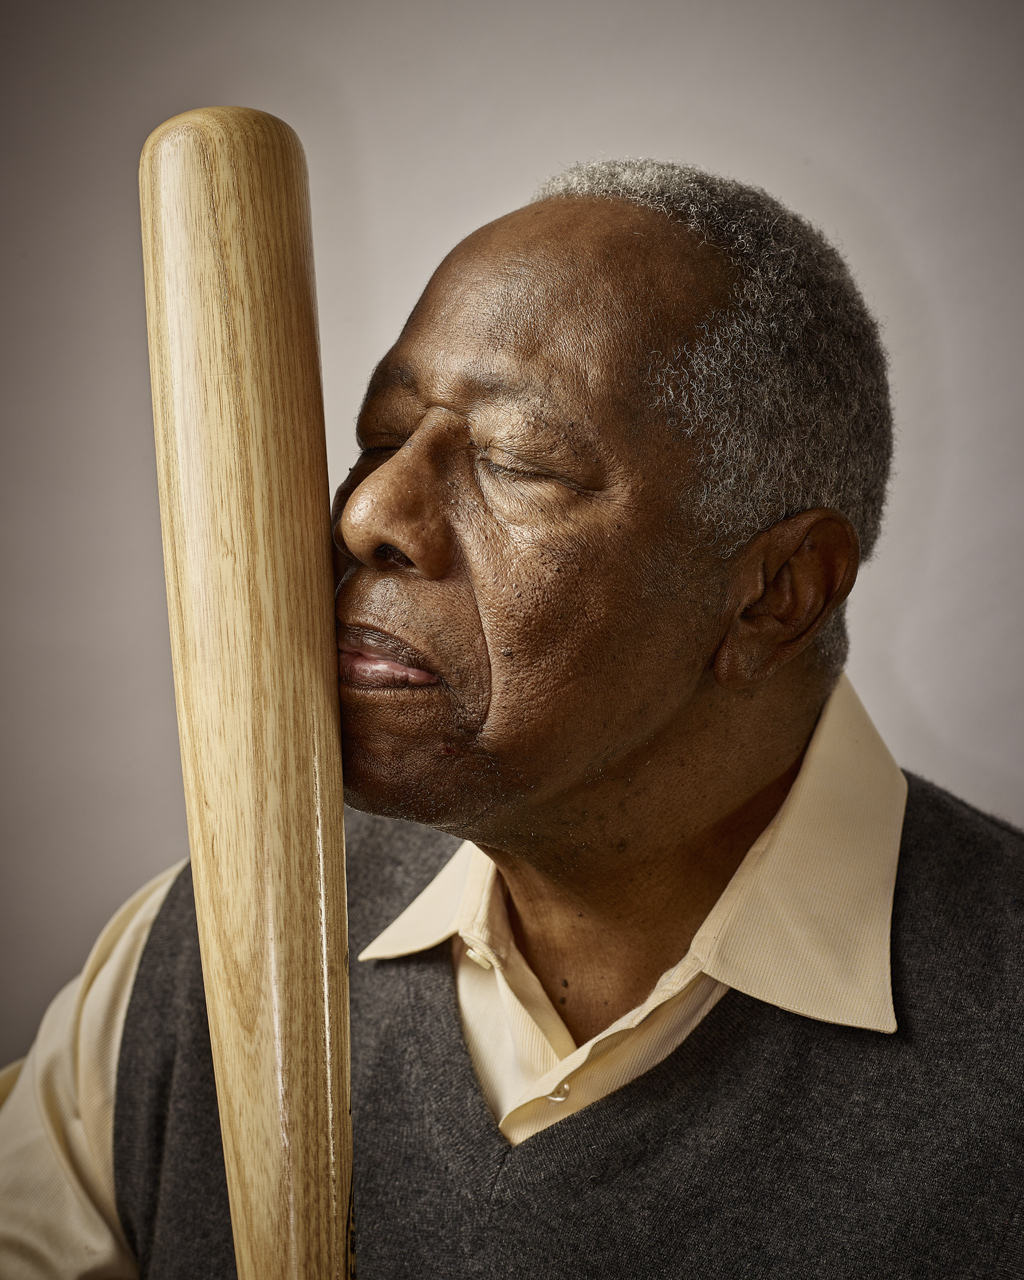 Hank Aaron | Baseball Icon  | Miami Advertising Photographer Jeffery Salter